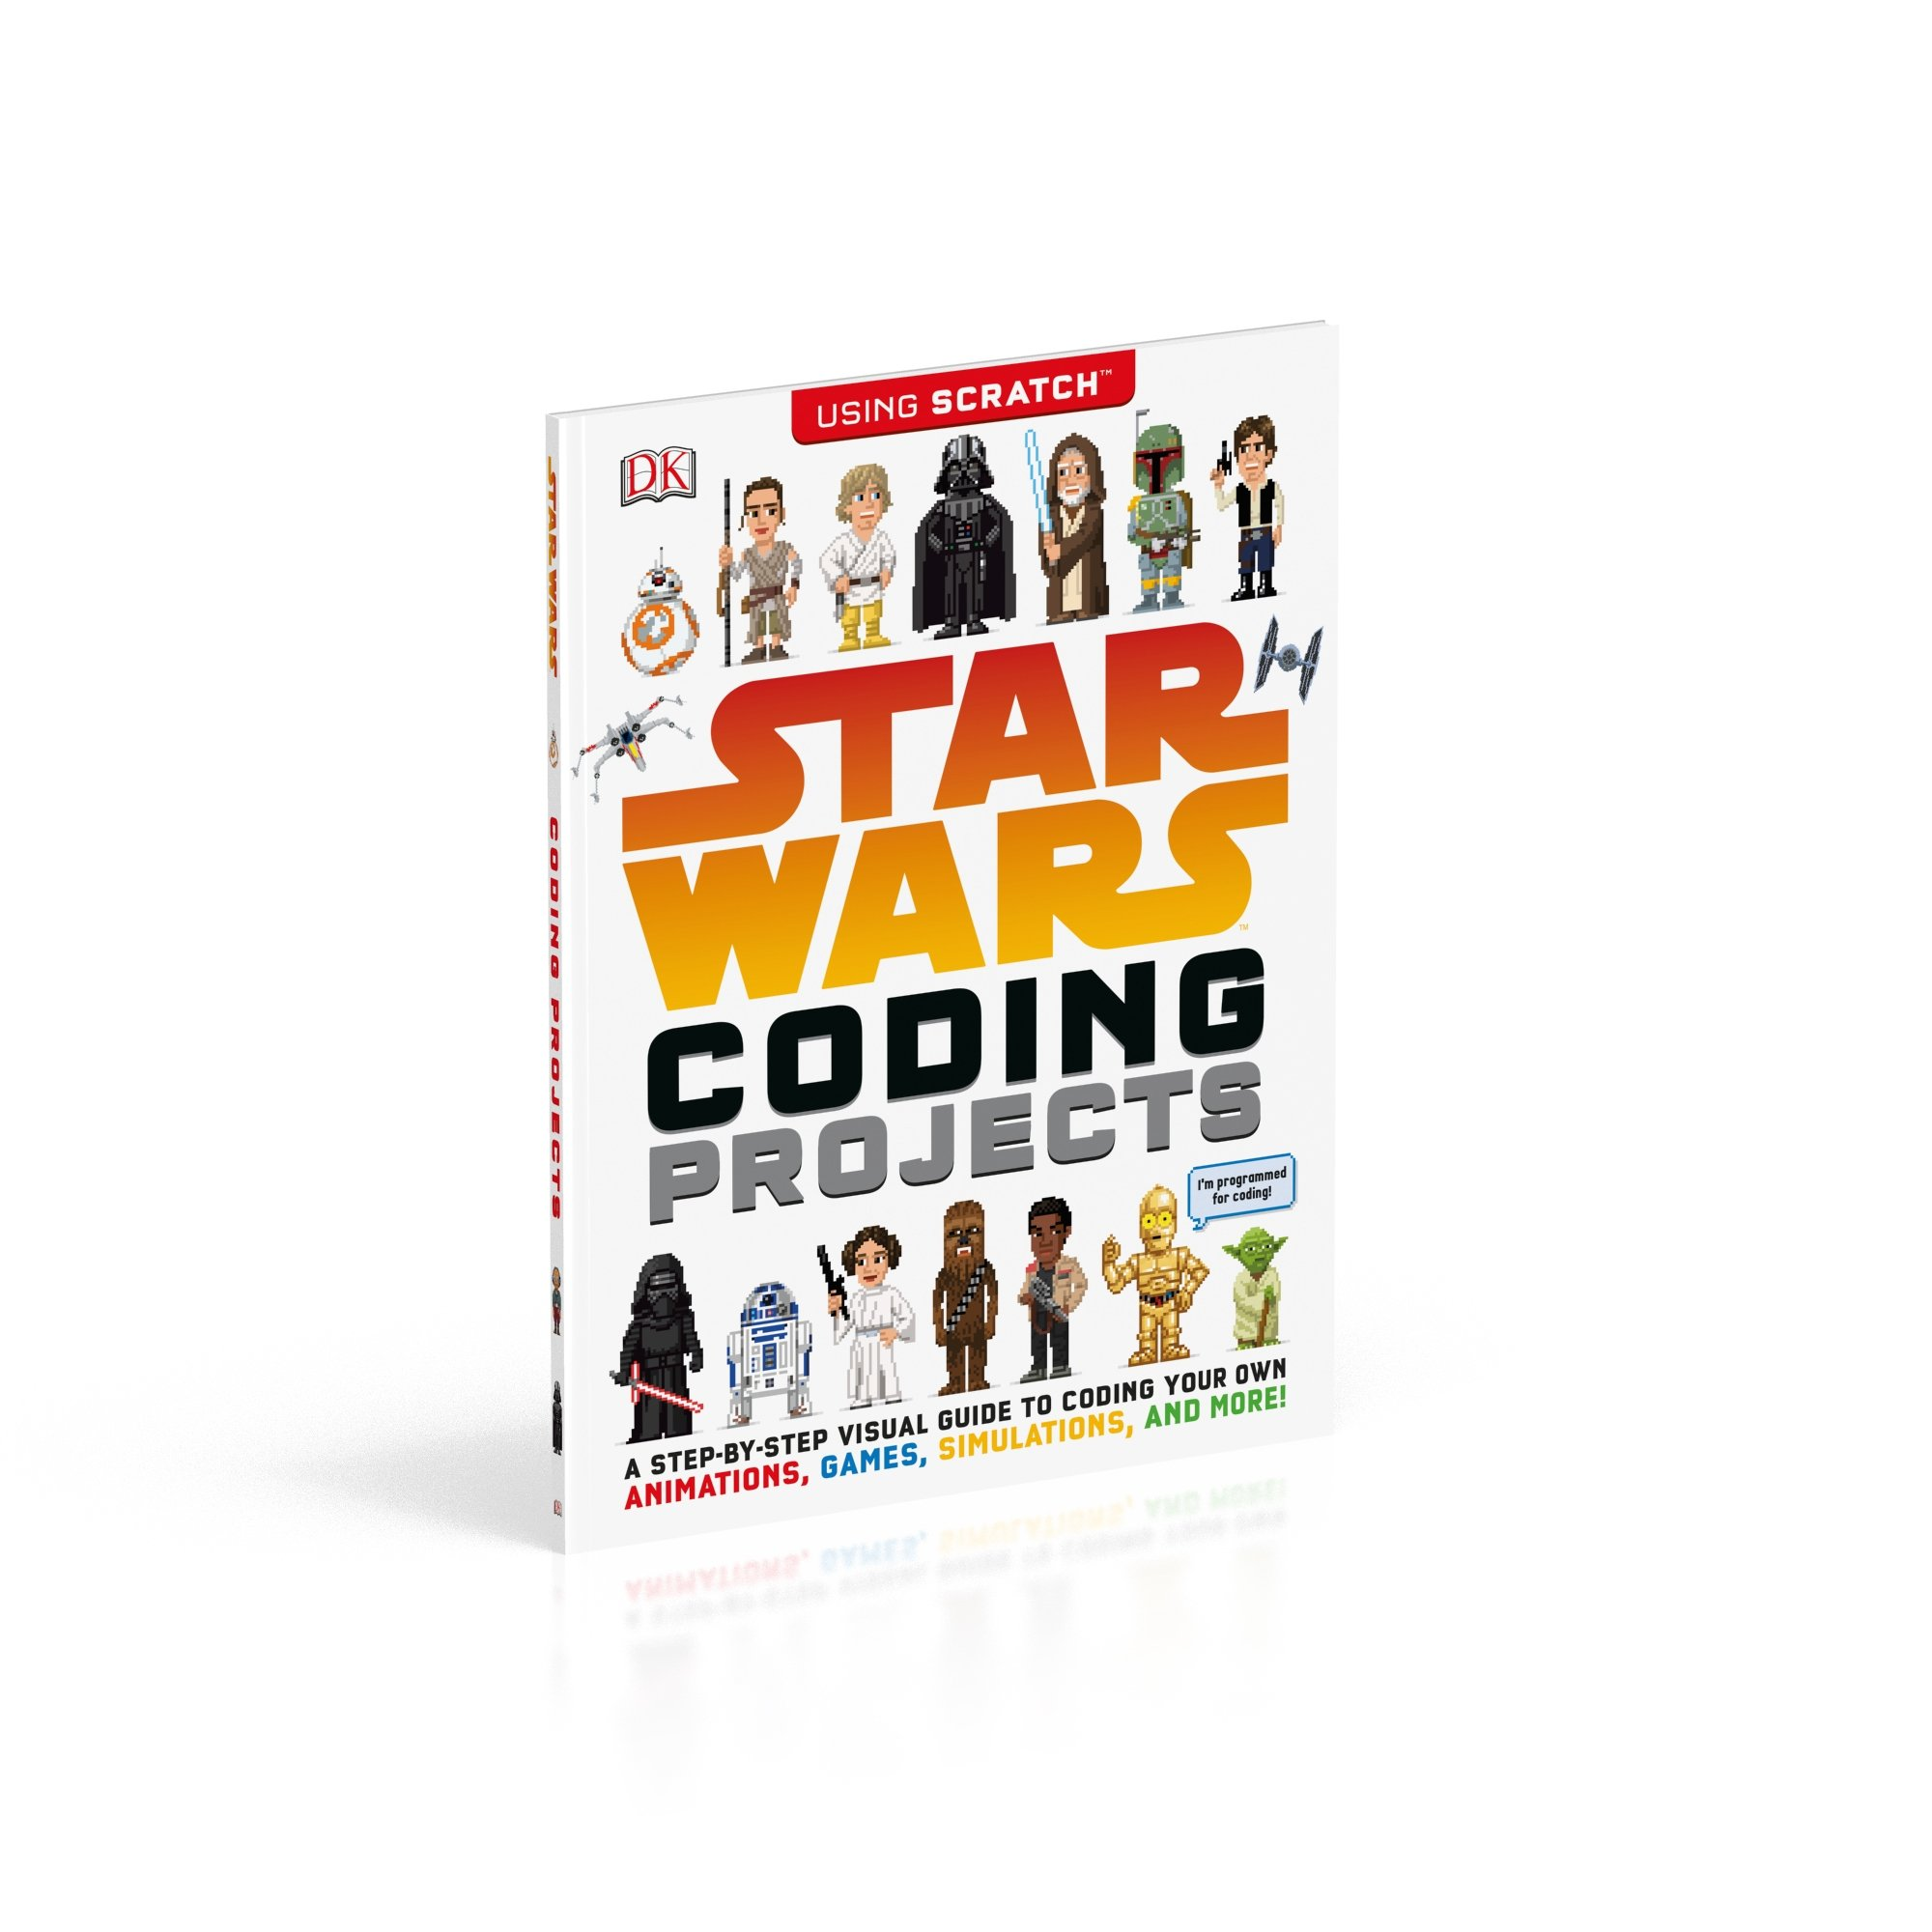 Star Wars Coding Projects: A Step-By-Step Visual Guide to Coding Your Own Animations, Games, Simulations an: Amazon.es: Jon Woodcock, Kiki Prottsman: Libros ...